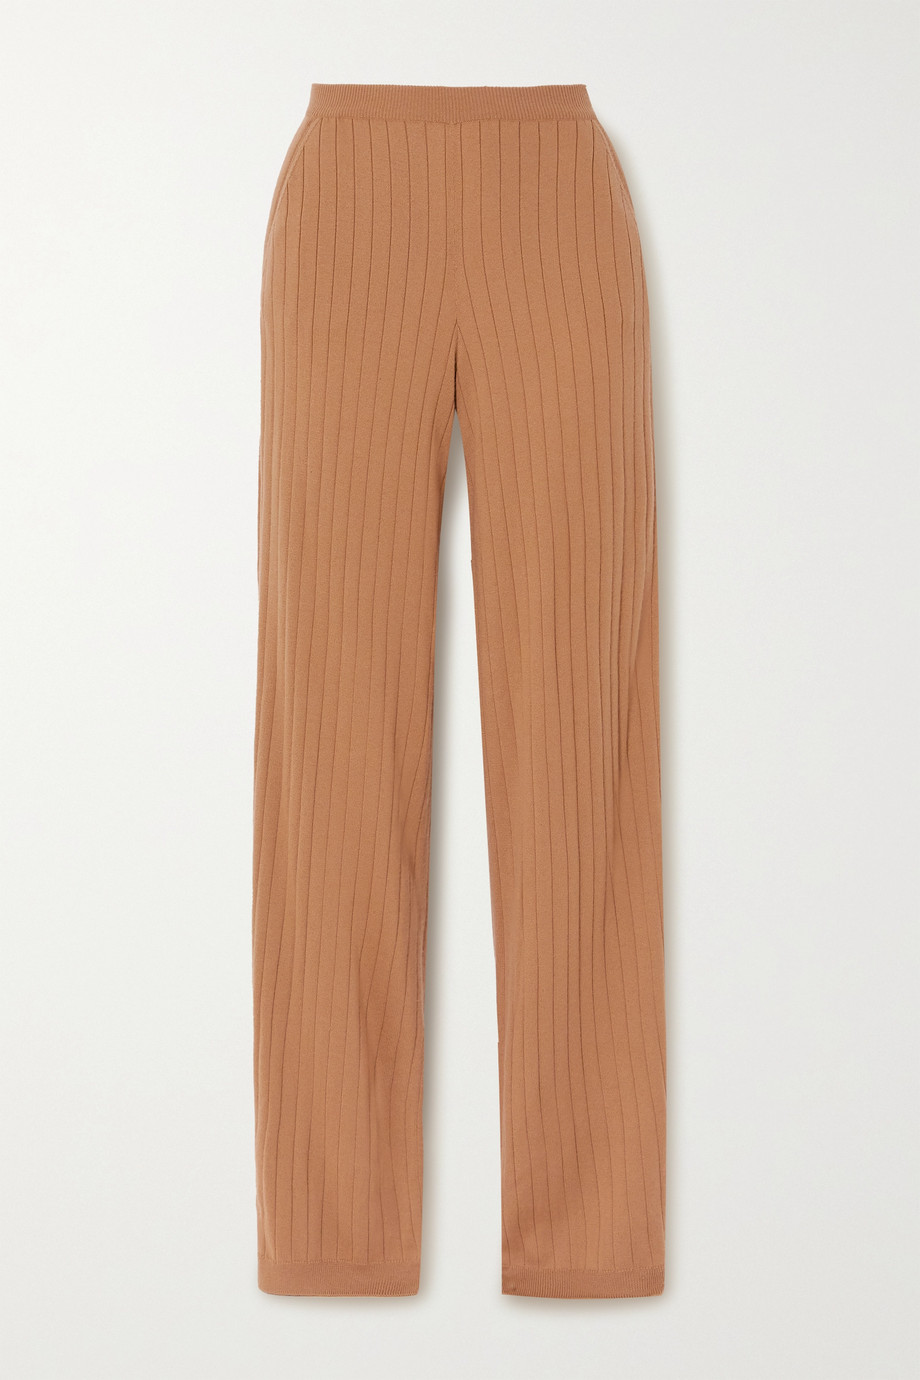 Loro Piana Times Square ribbed cashmere straight-leg pants